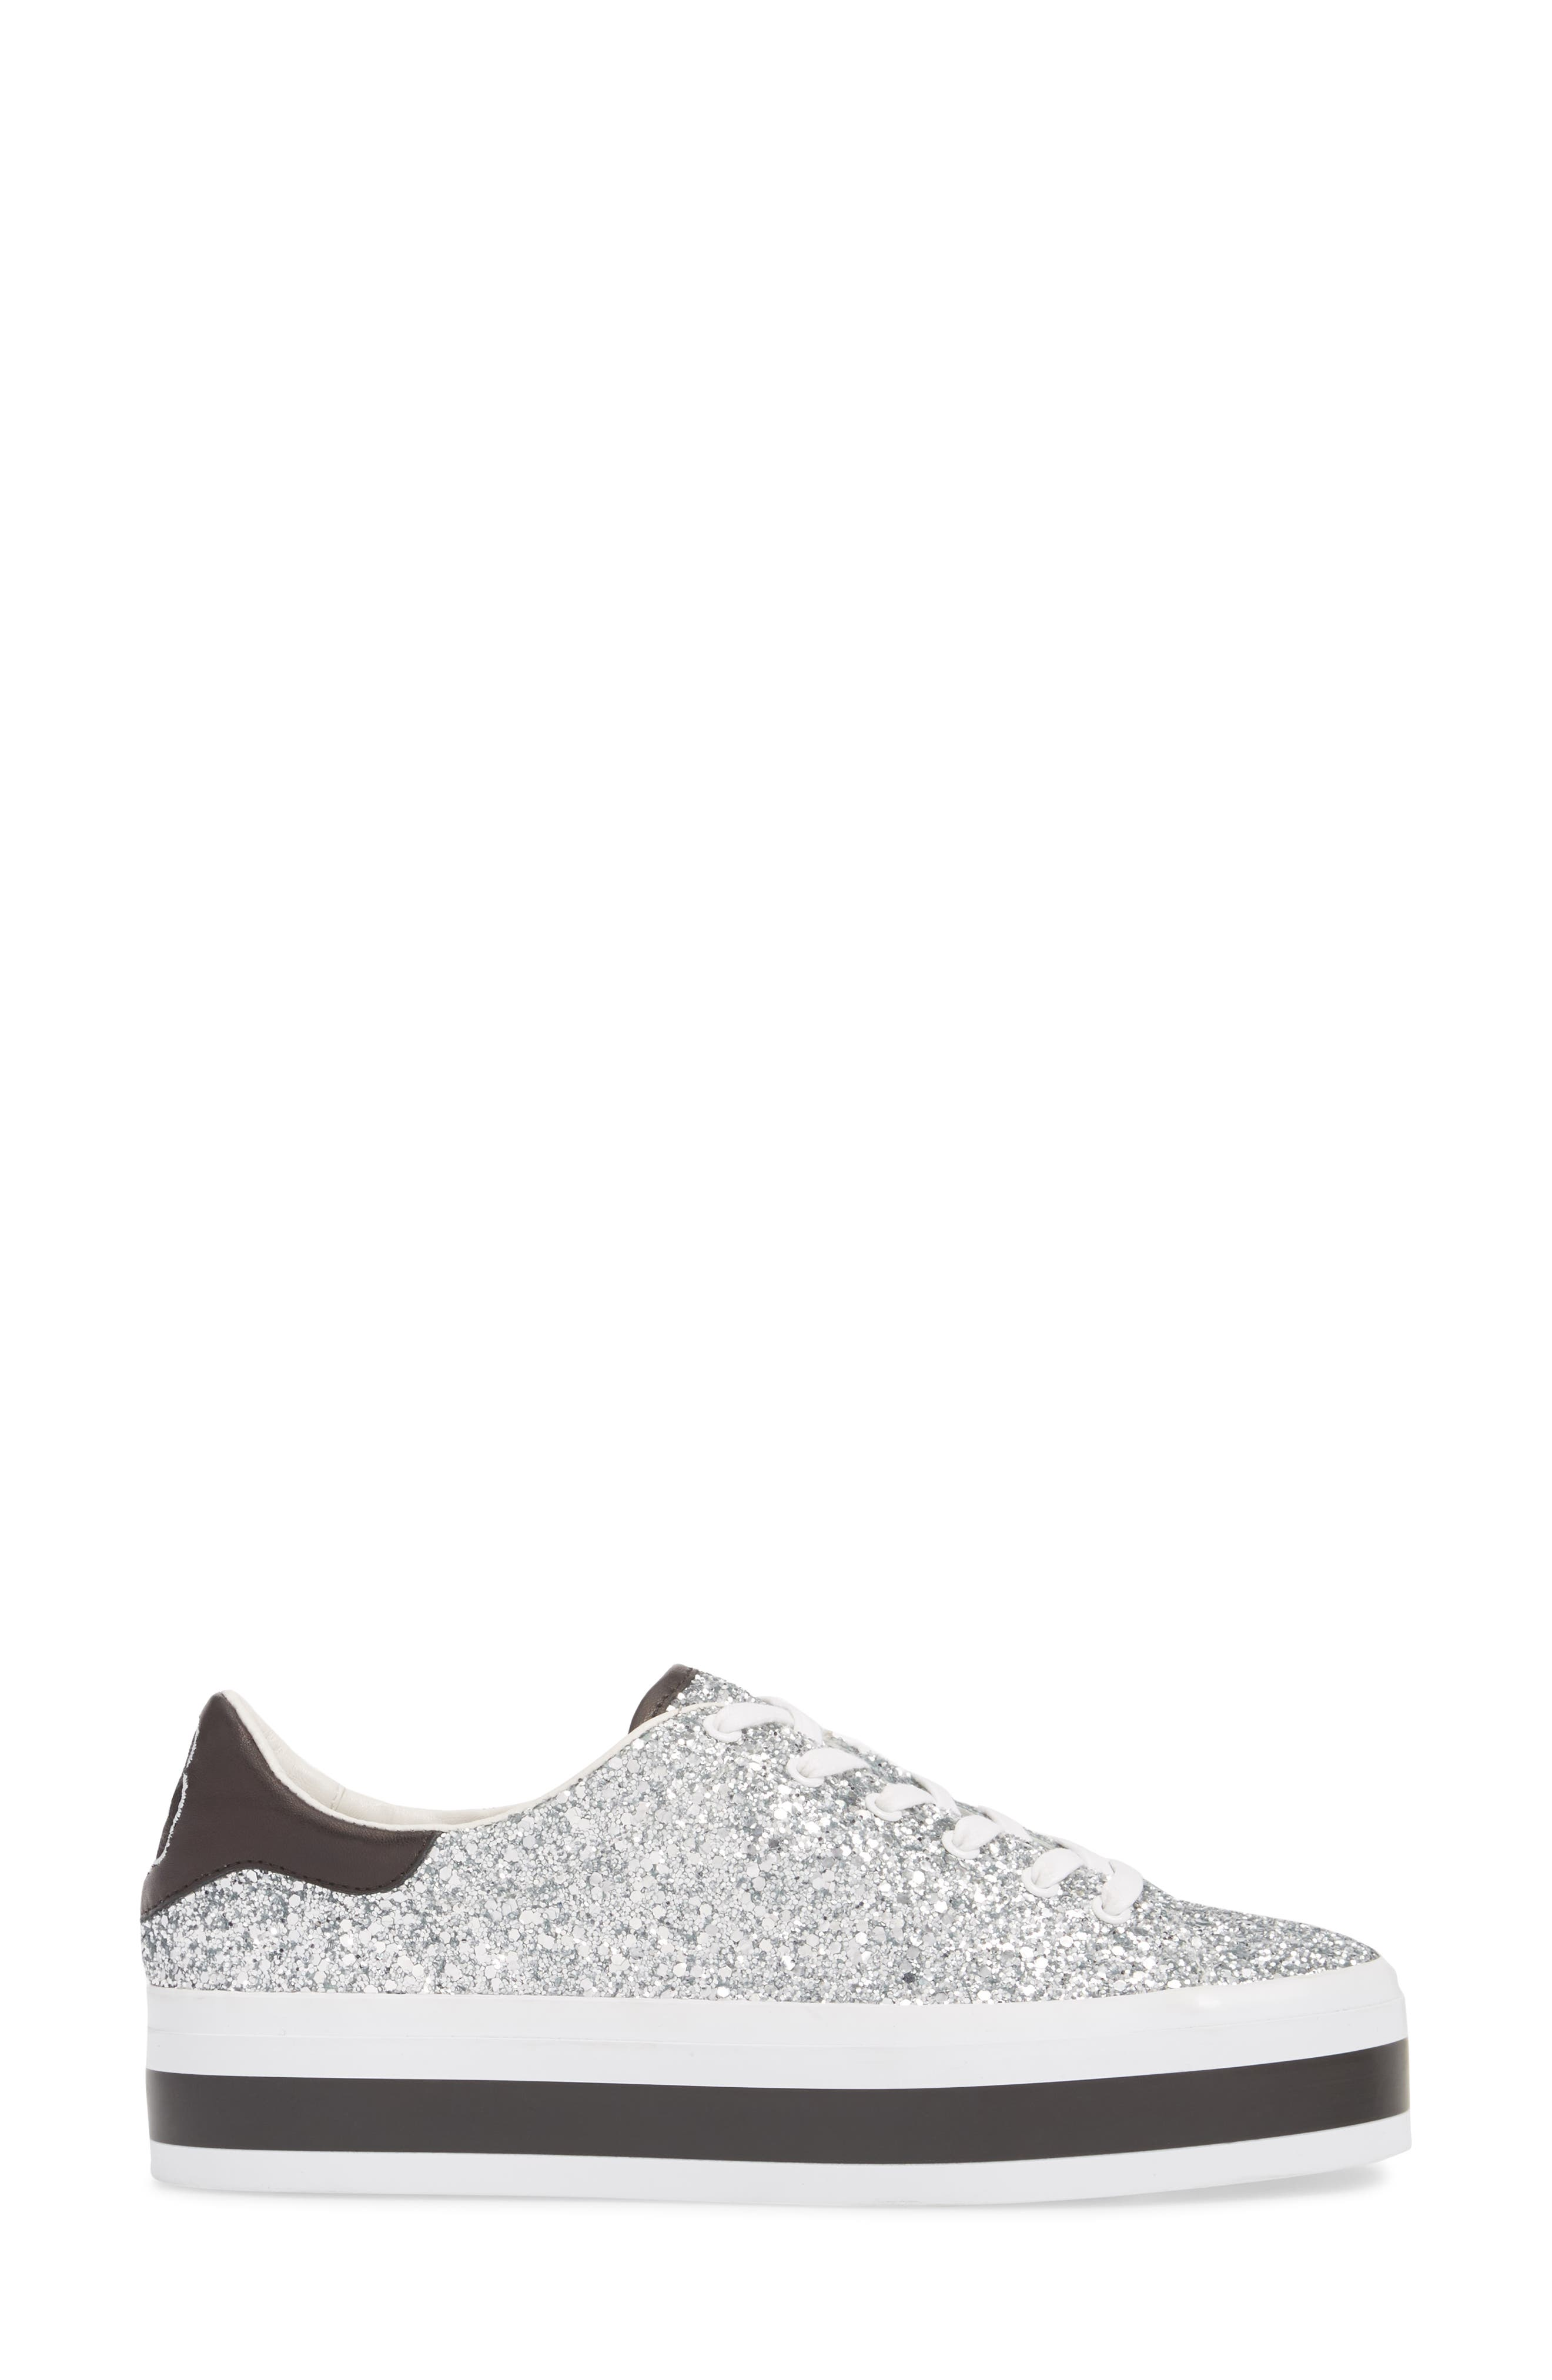 Ezra Flatform Sneaker,                             Alternate thumbnail 3, color,                             SILVER